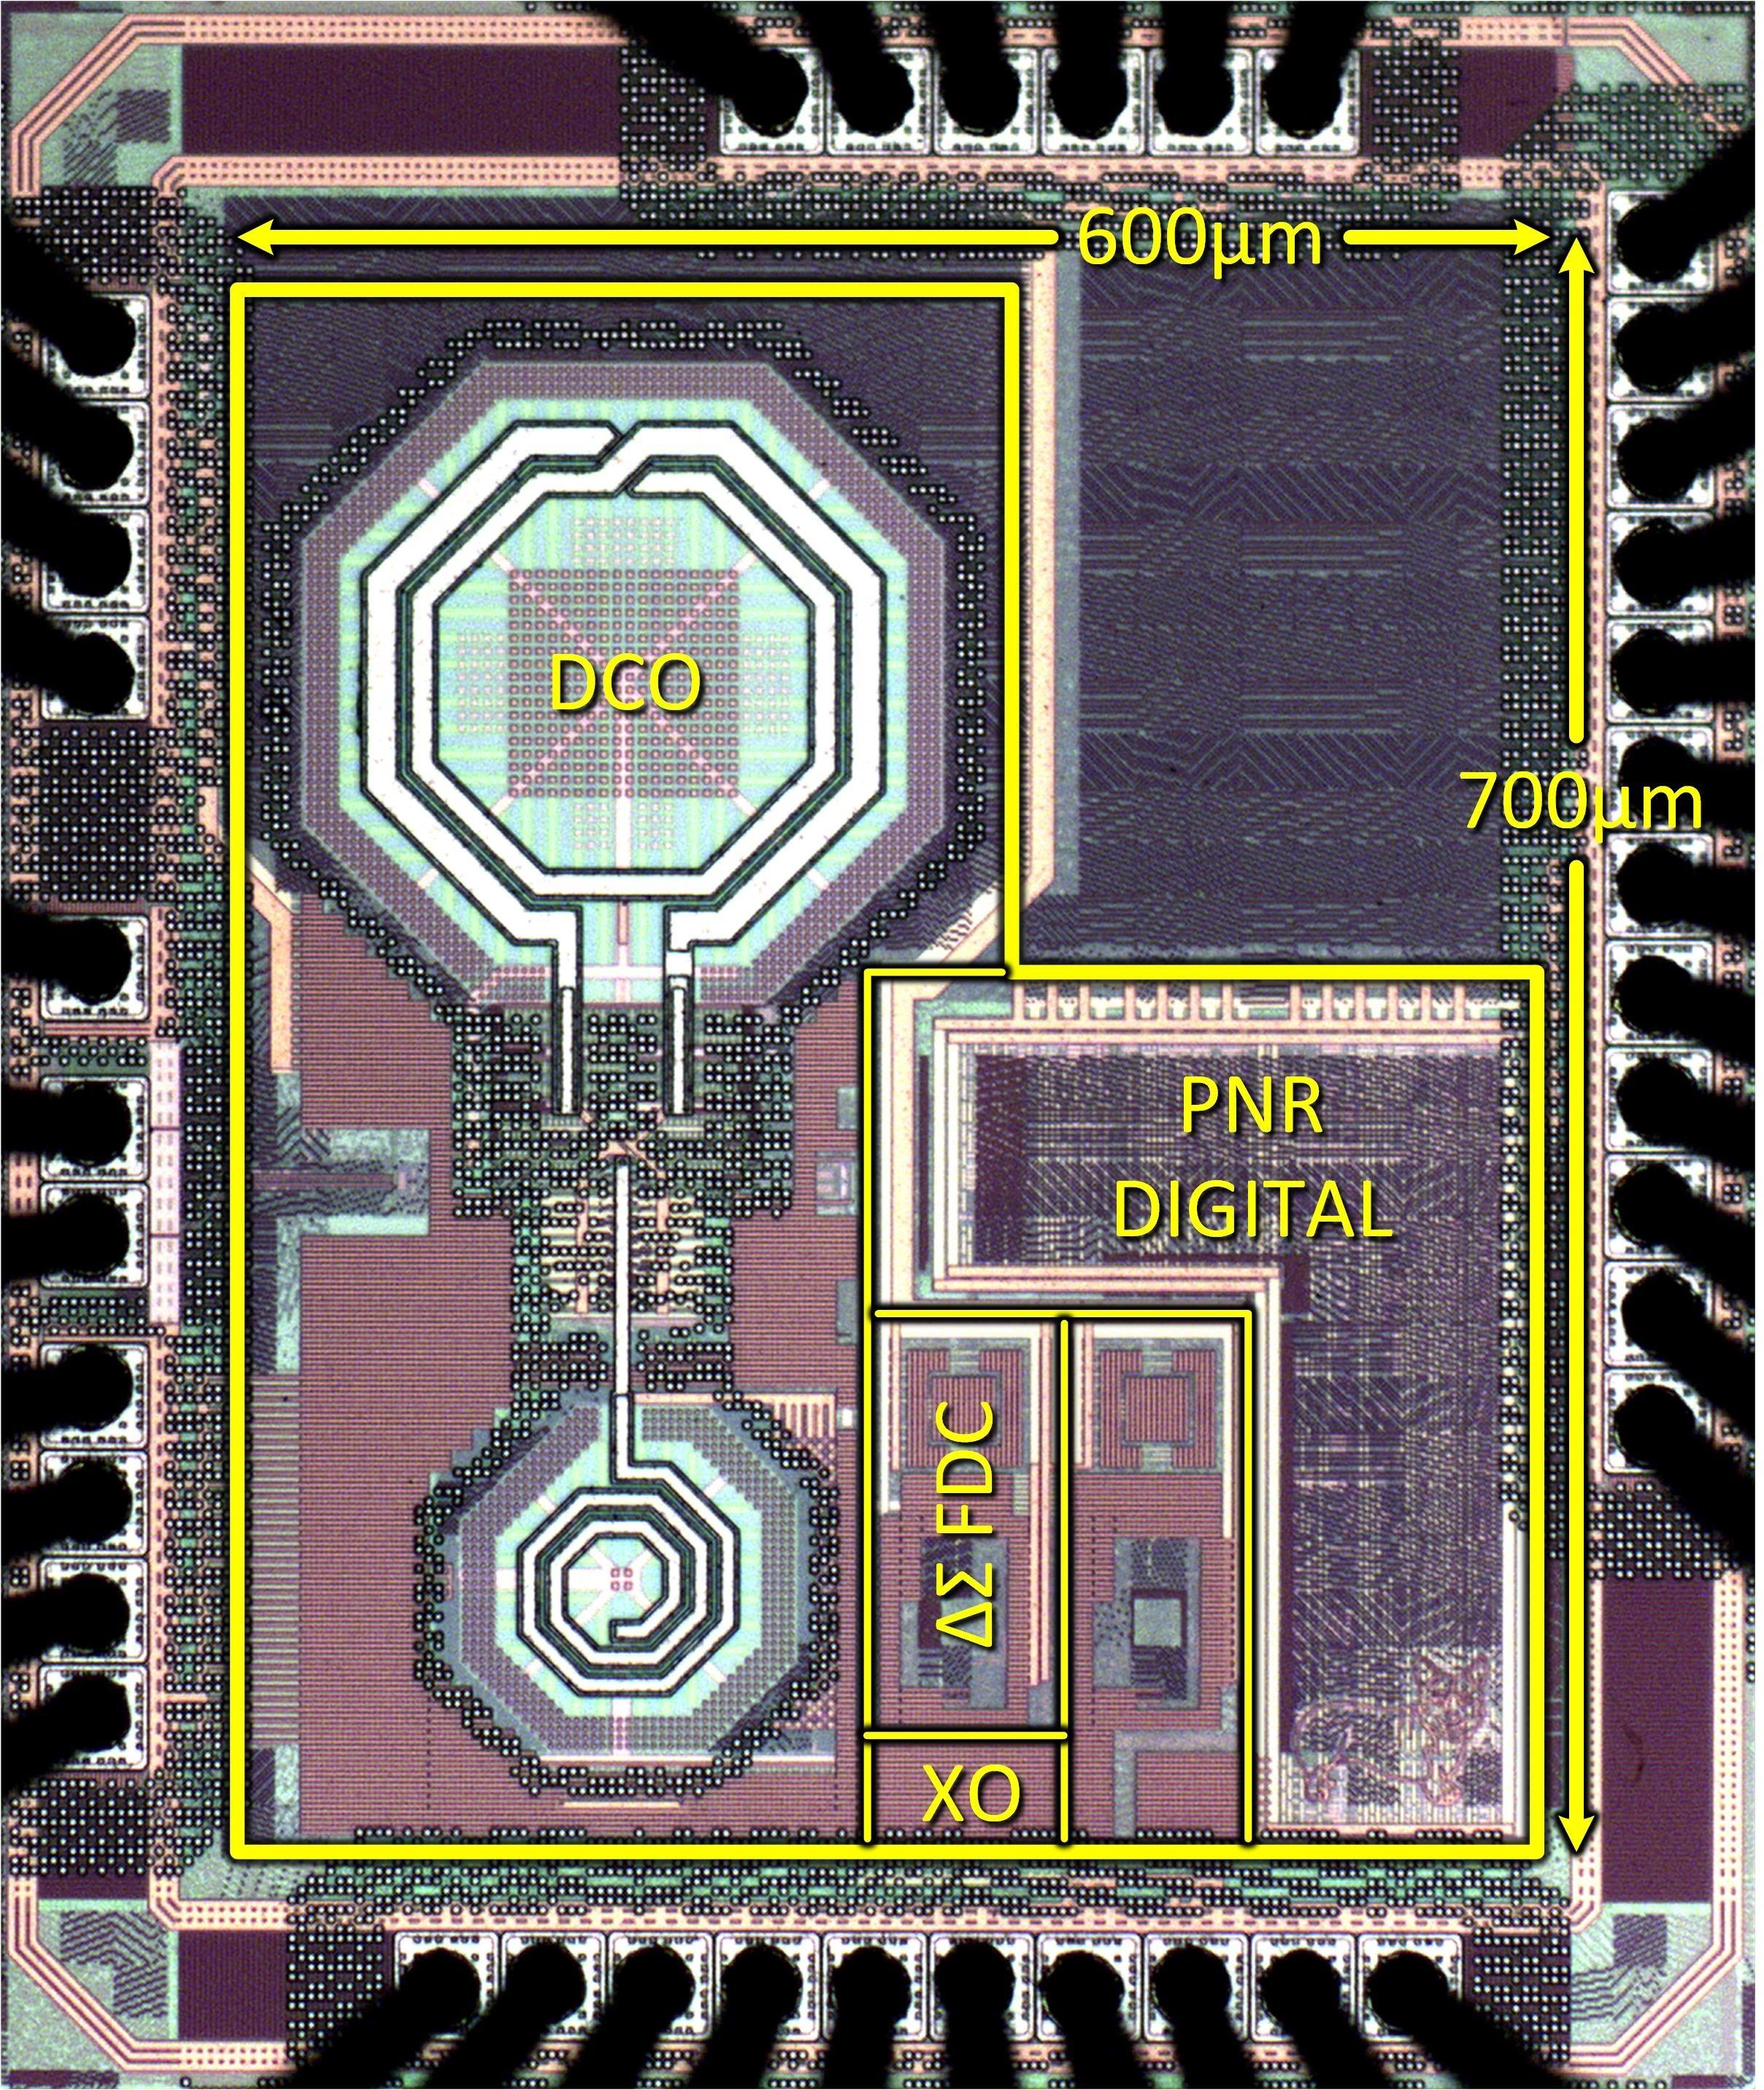 Electronic Circuits Systems Electrical And Computer Engineering Circuit Design Software Project Topics The Ecs Group Focuses On Analysis Synthesis Of Advanced High Performance Or Low Power